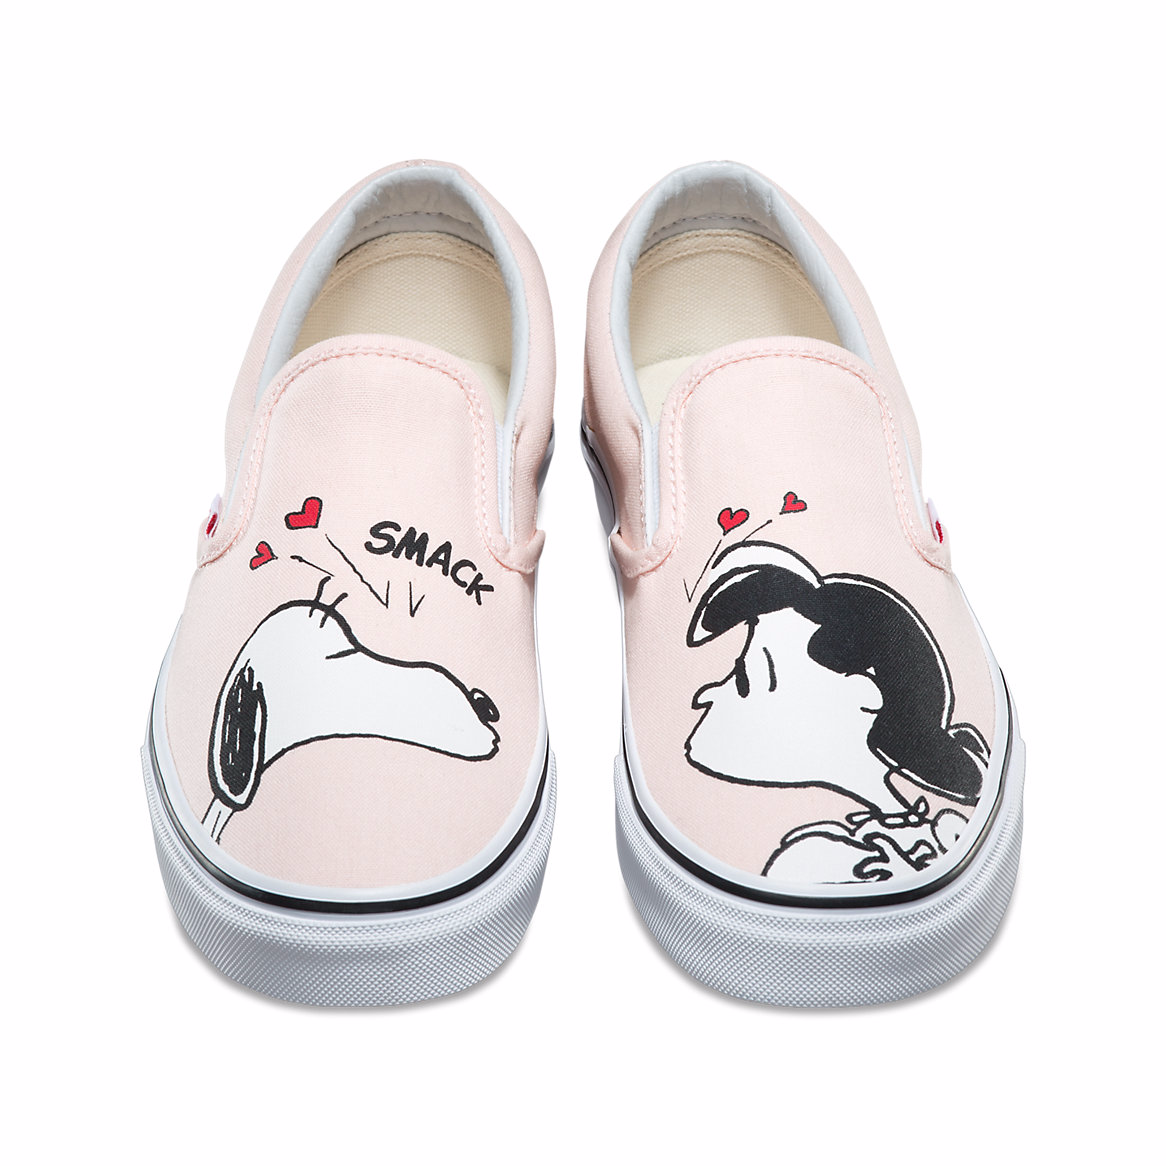 snoopy_lucy_slipons.png